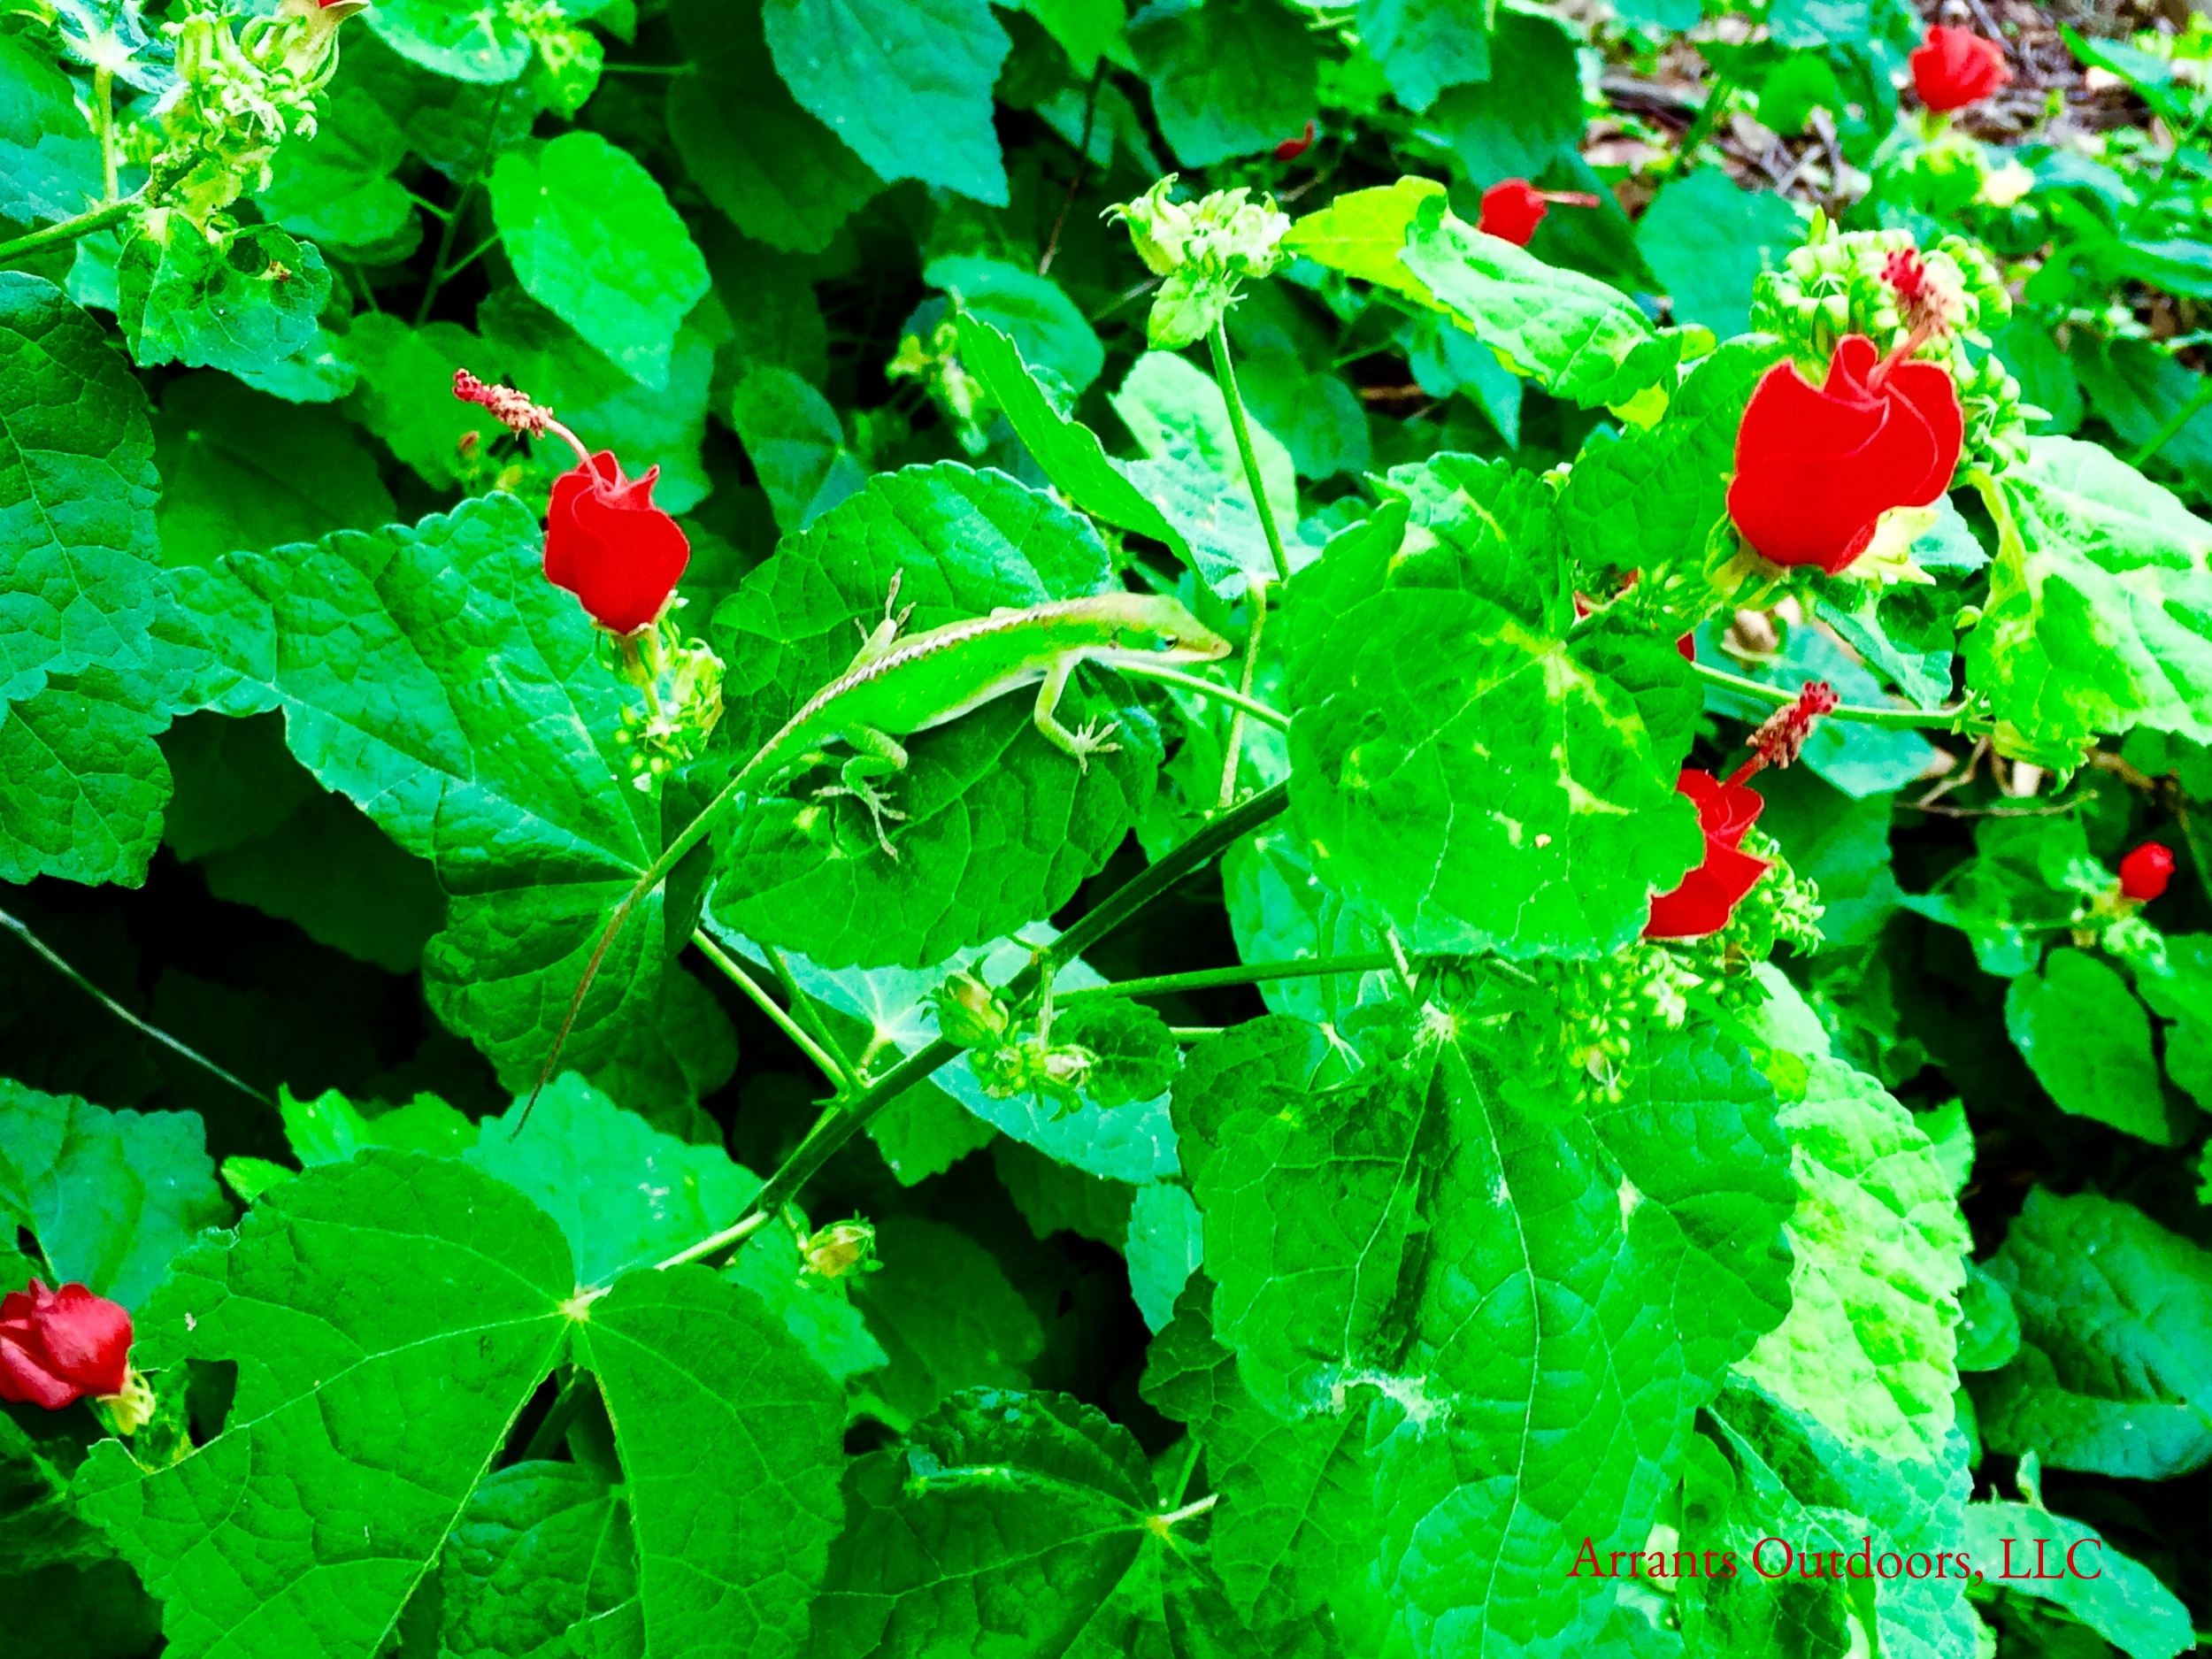 Turk's Cap (Malvaviscus arboreus var. drummondii) is a pollinator favorite and can bustle with insect activity.  This Carolina Anole (Anolis carolinensis) blends in with the greens of the leaves while it patiently waits for a meal. (Click to enlarge)